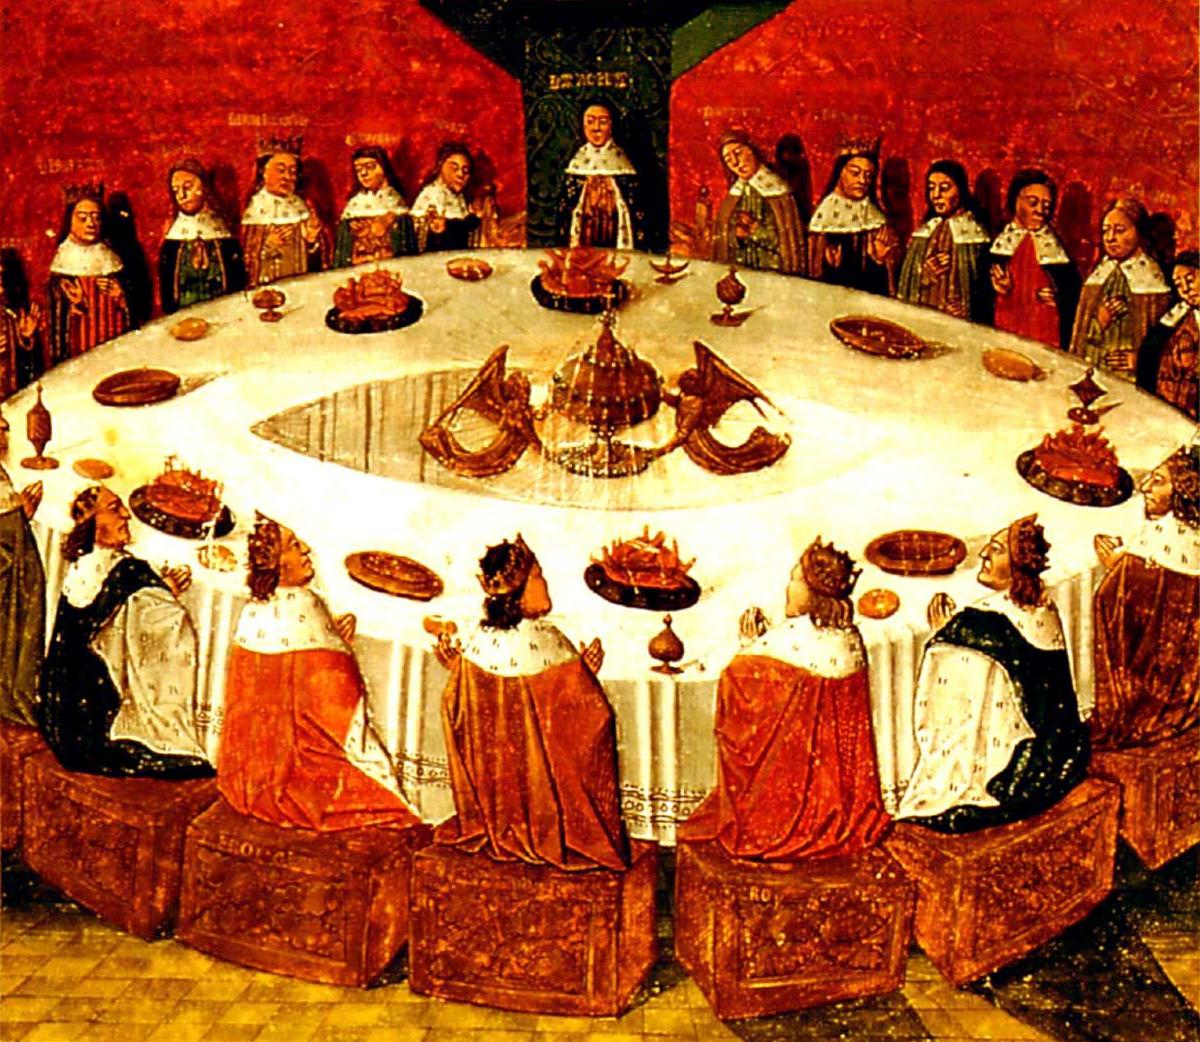 king arthur and his knights round Free essay: king arthur and the knights of the round table the legends of king arthur of britain and his knights of the round table, among the most popular.